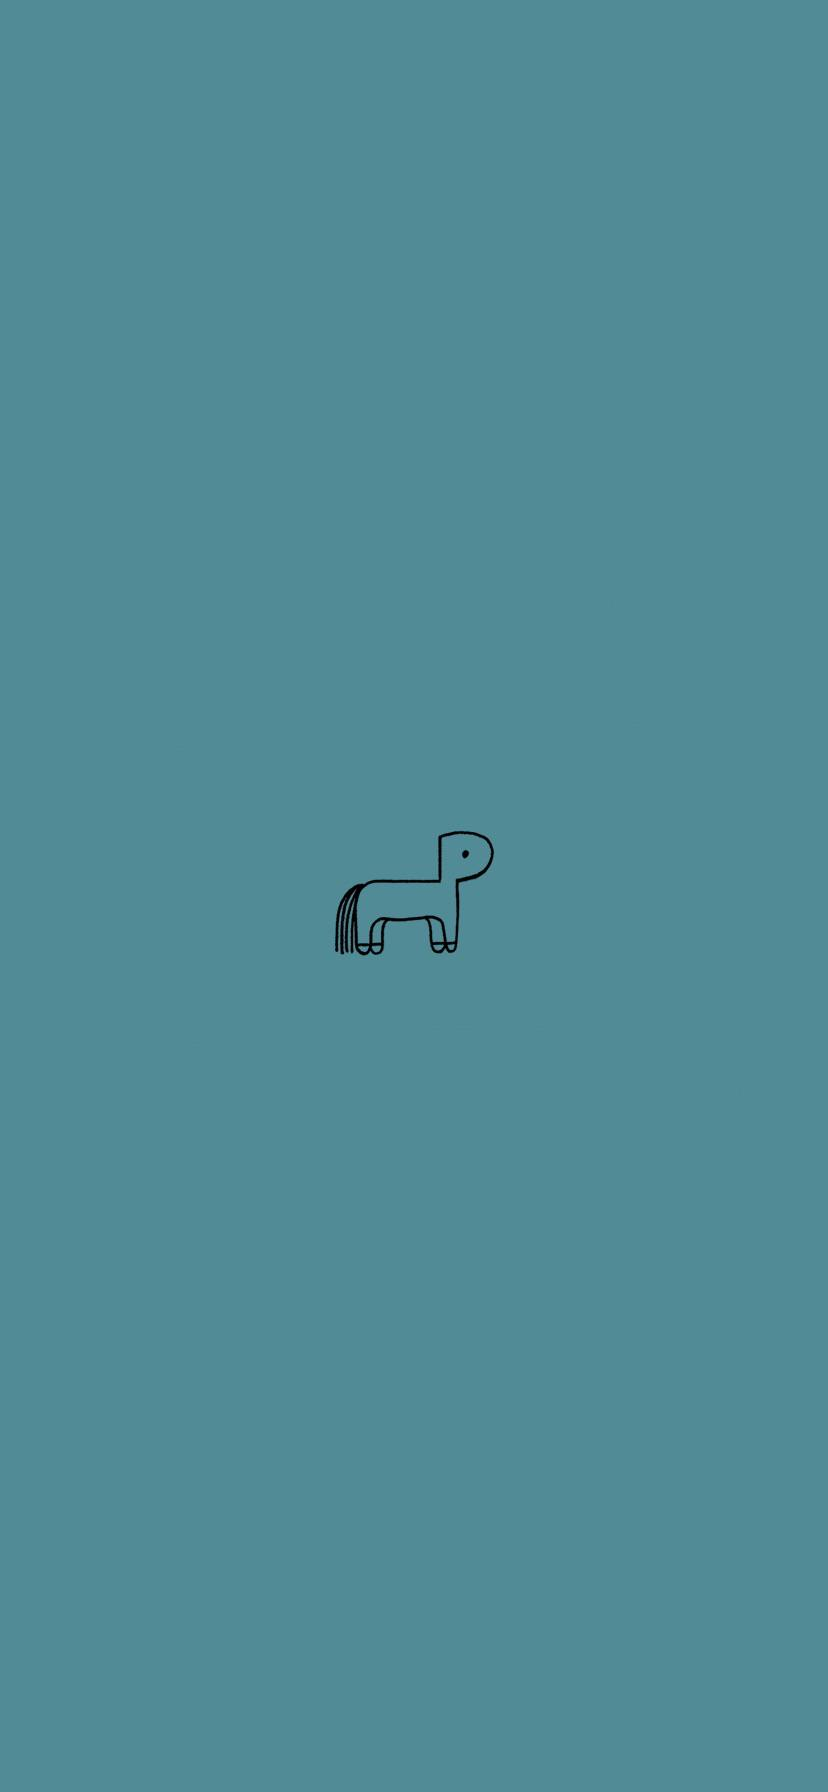 I Made A Simple Pony Album Wallpaper For You Guys Rexorangecounty In 2020 Simple Iphone Wallpaper Orange Wallpaper Hippie Wallpaper